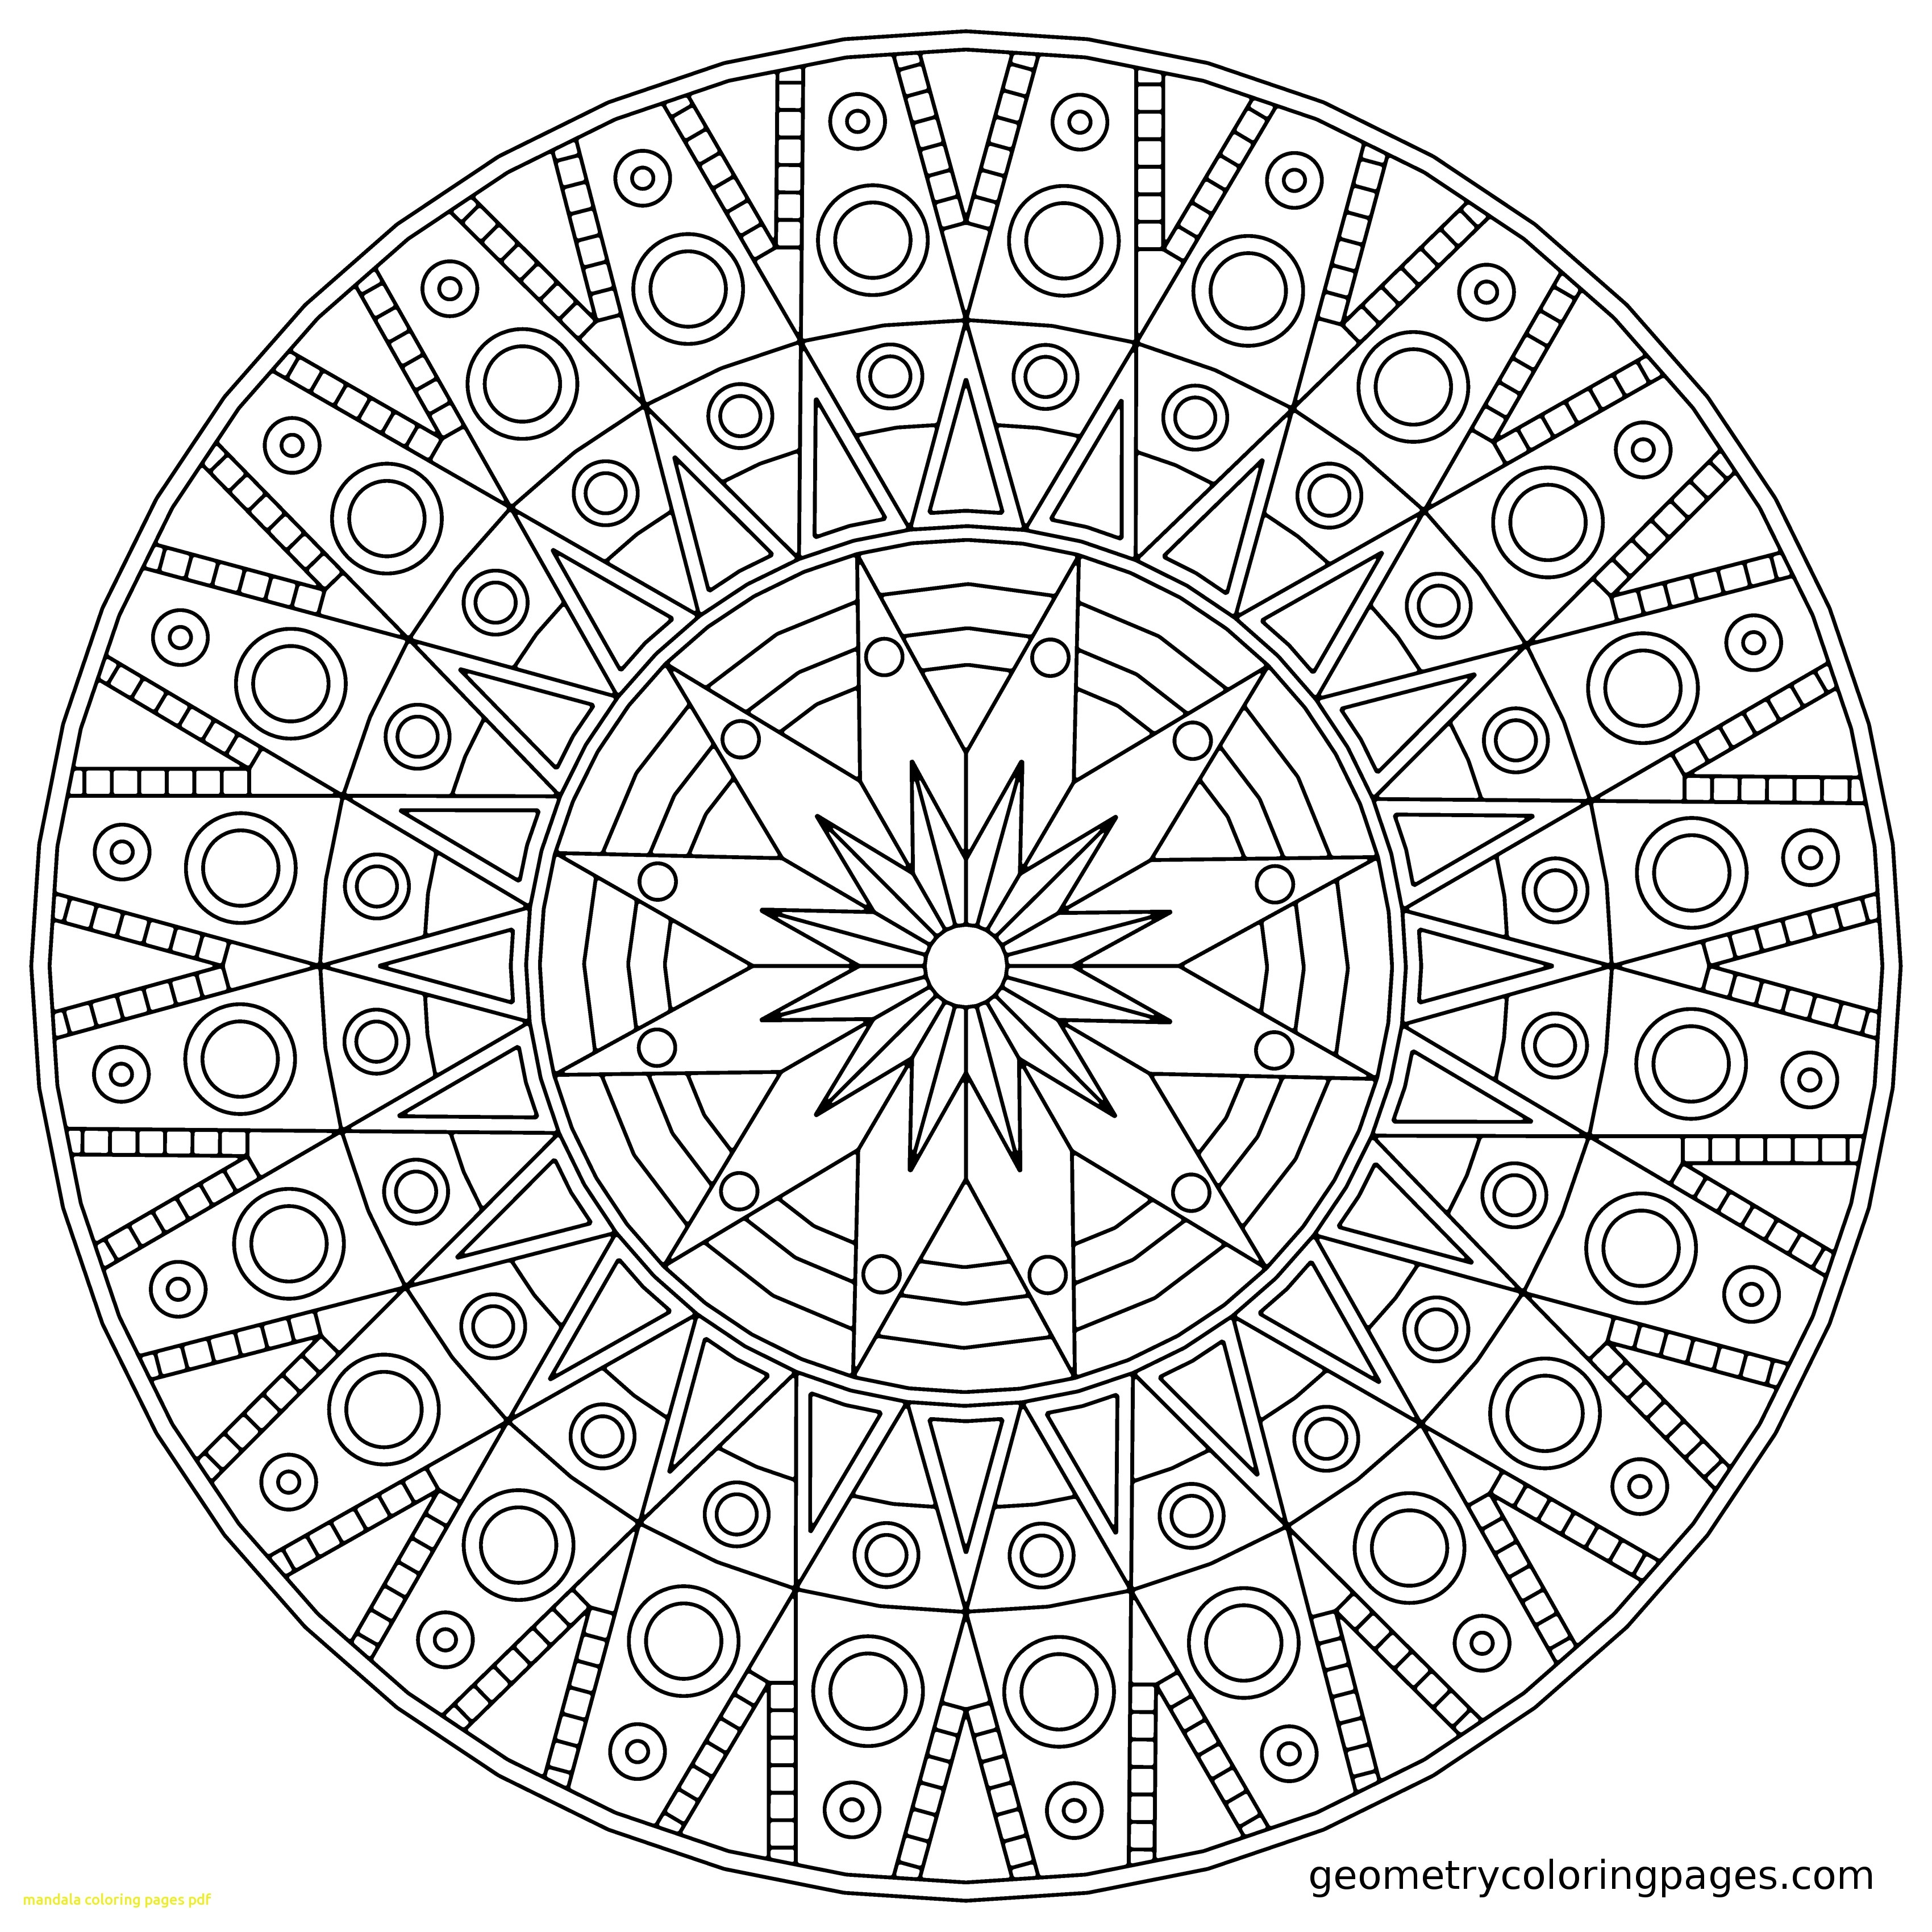 3400x3400 Geometric Mandala Coloring Pages Download Coloring For Kids